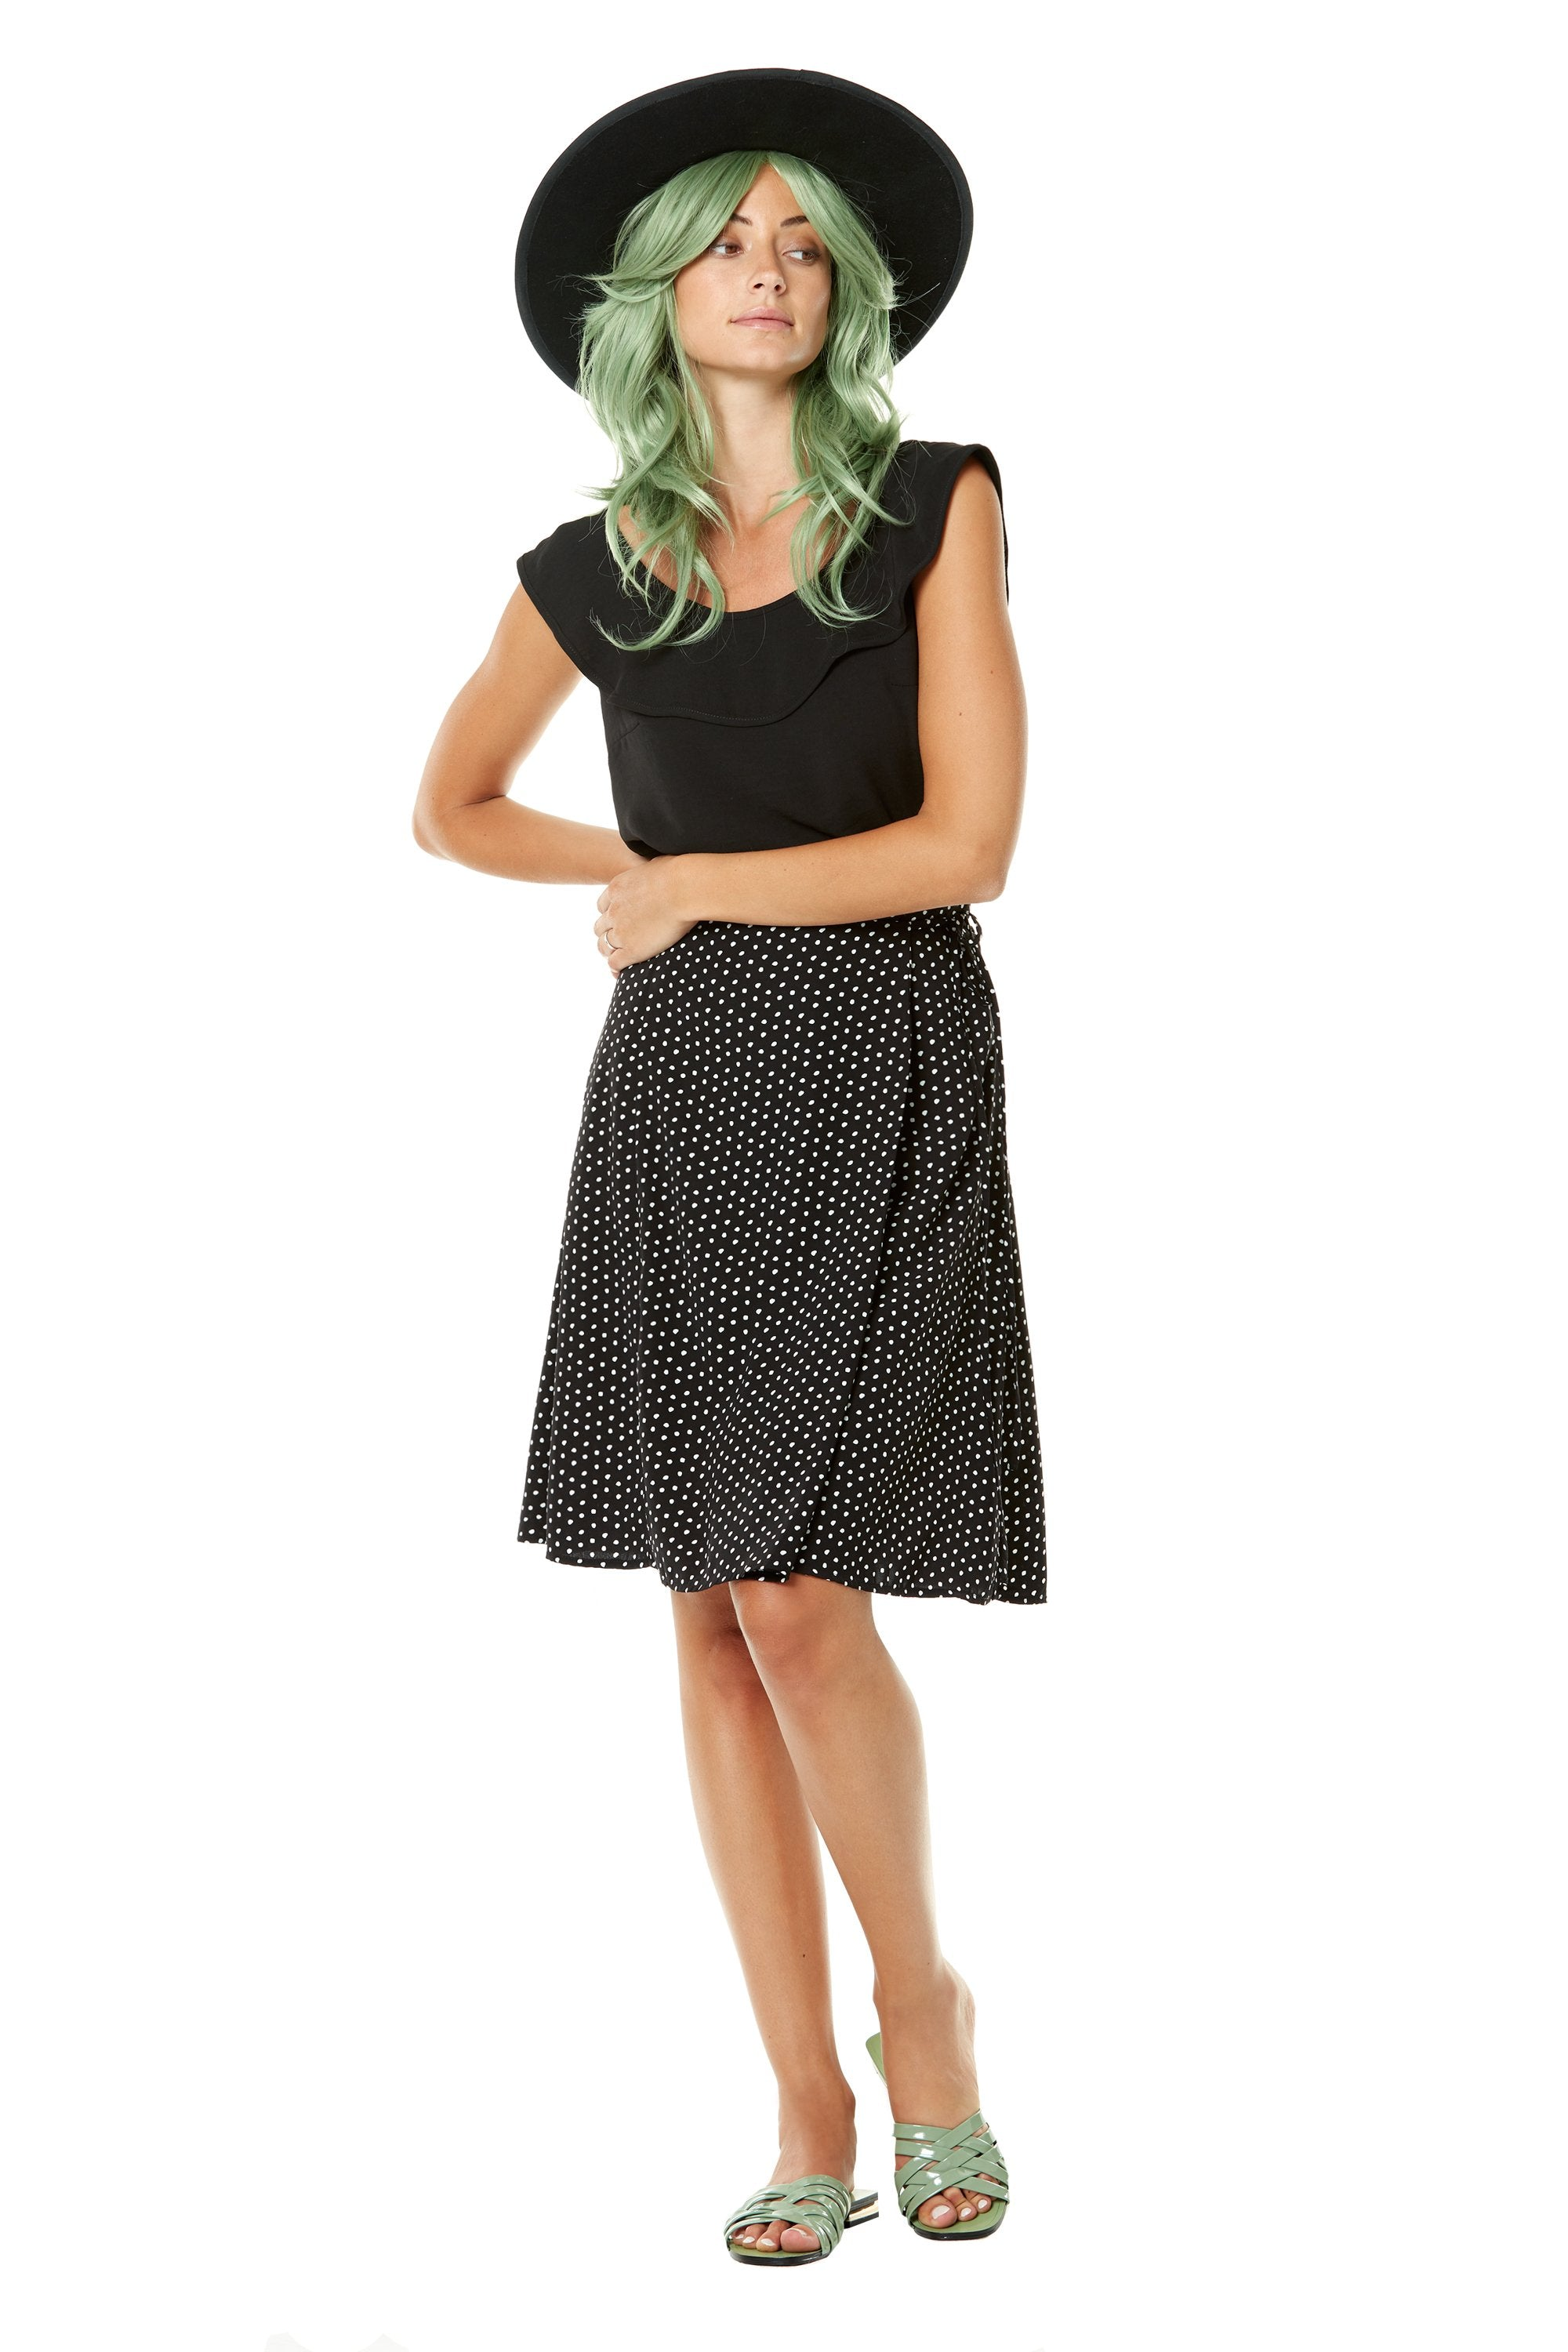 Jujyfruits Skirt by Annie 50, Black and White Dots, faux wrap, flared skirt, lined, pockets, sizes XS to L, made in Quebec